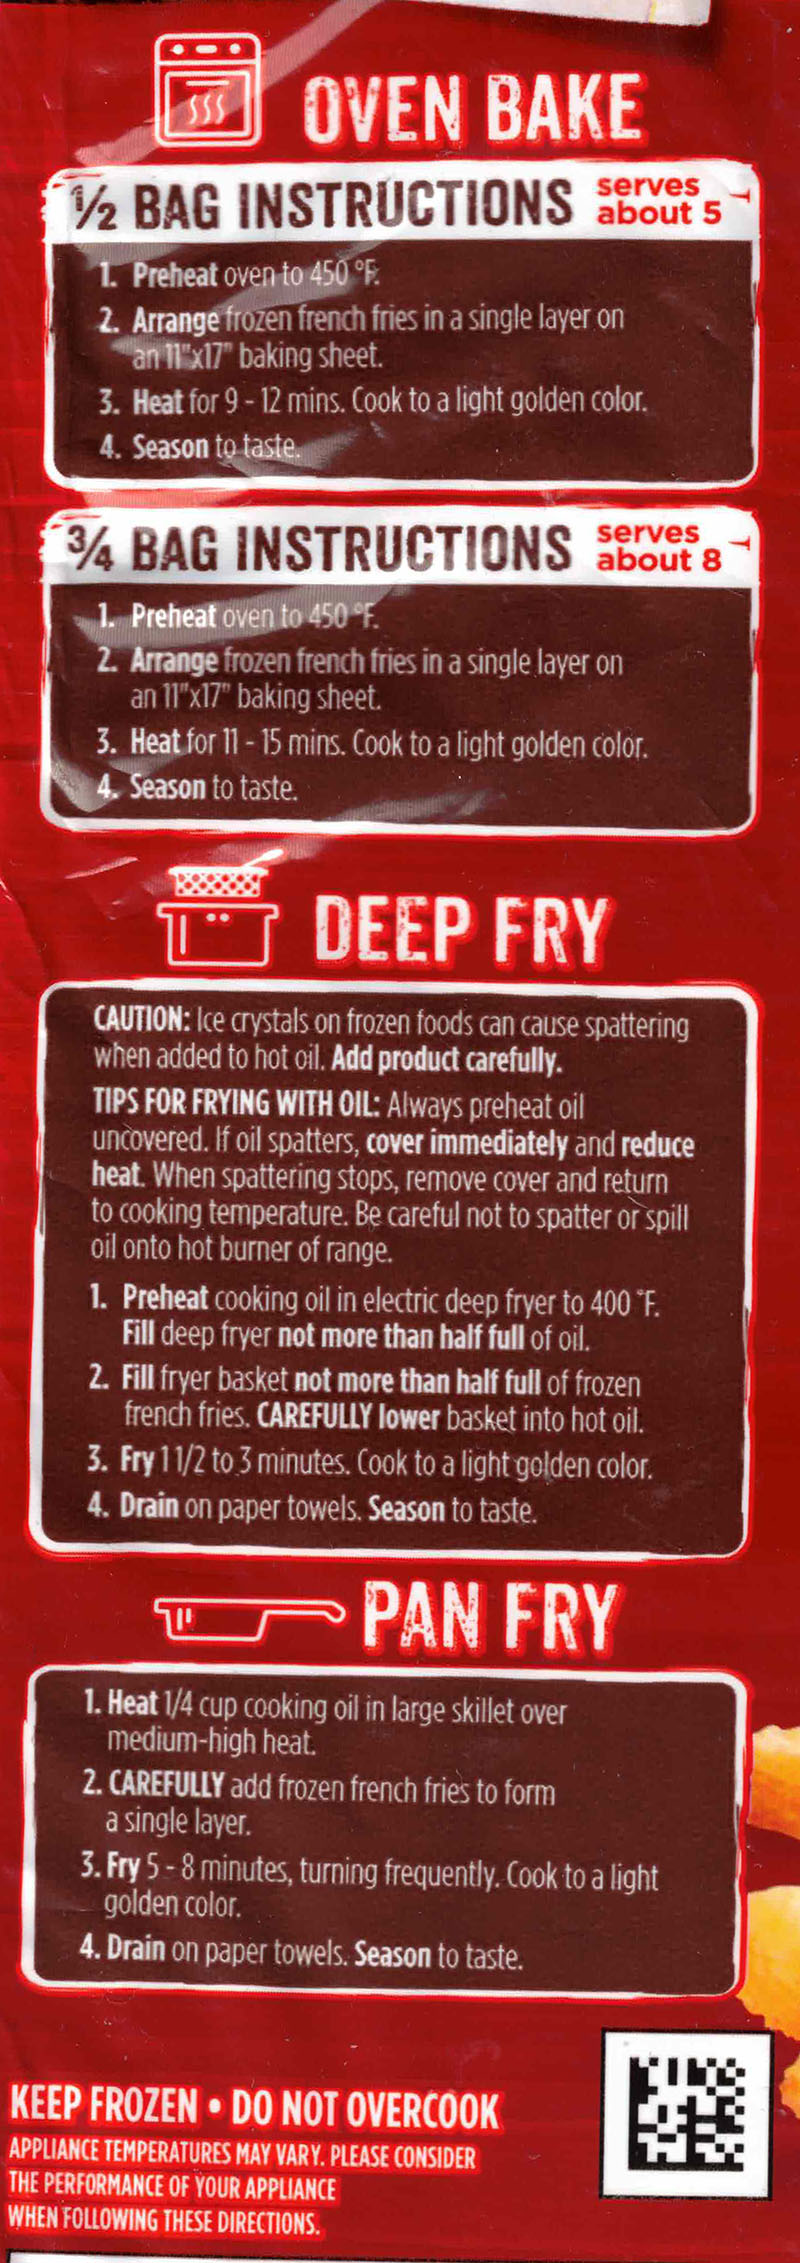 Ore-Ida Extra Crispy Fast Food French Fries cooking instructions